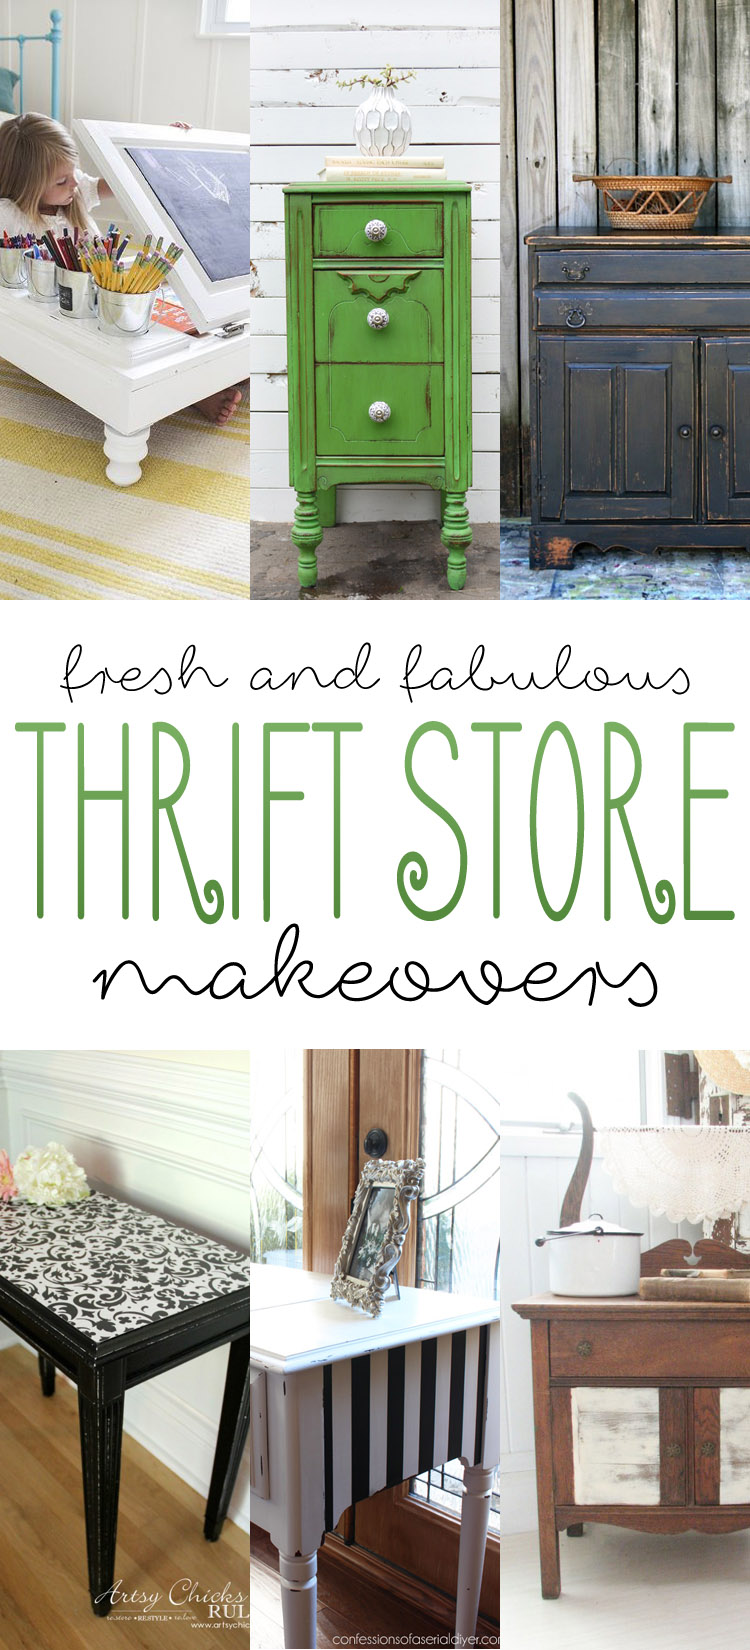 http://thecottagemarket.com/wp-content/uploads/2015/10/Thrift-tower-0000000.jpg